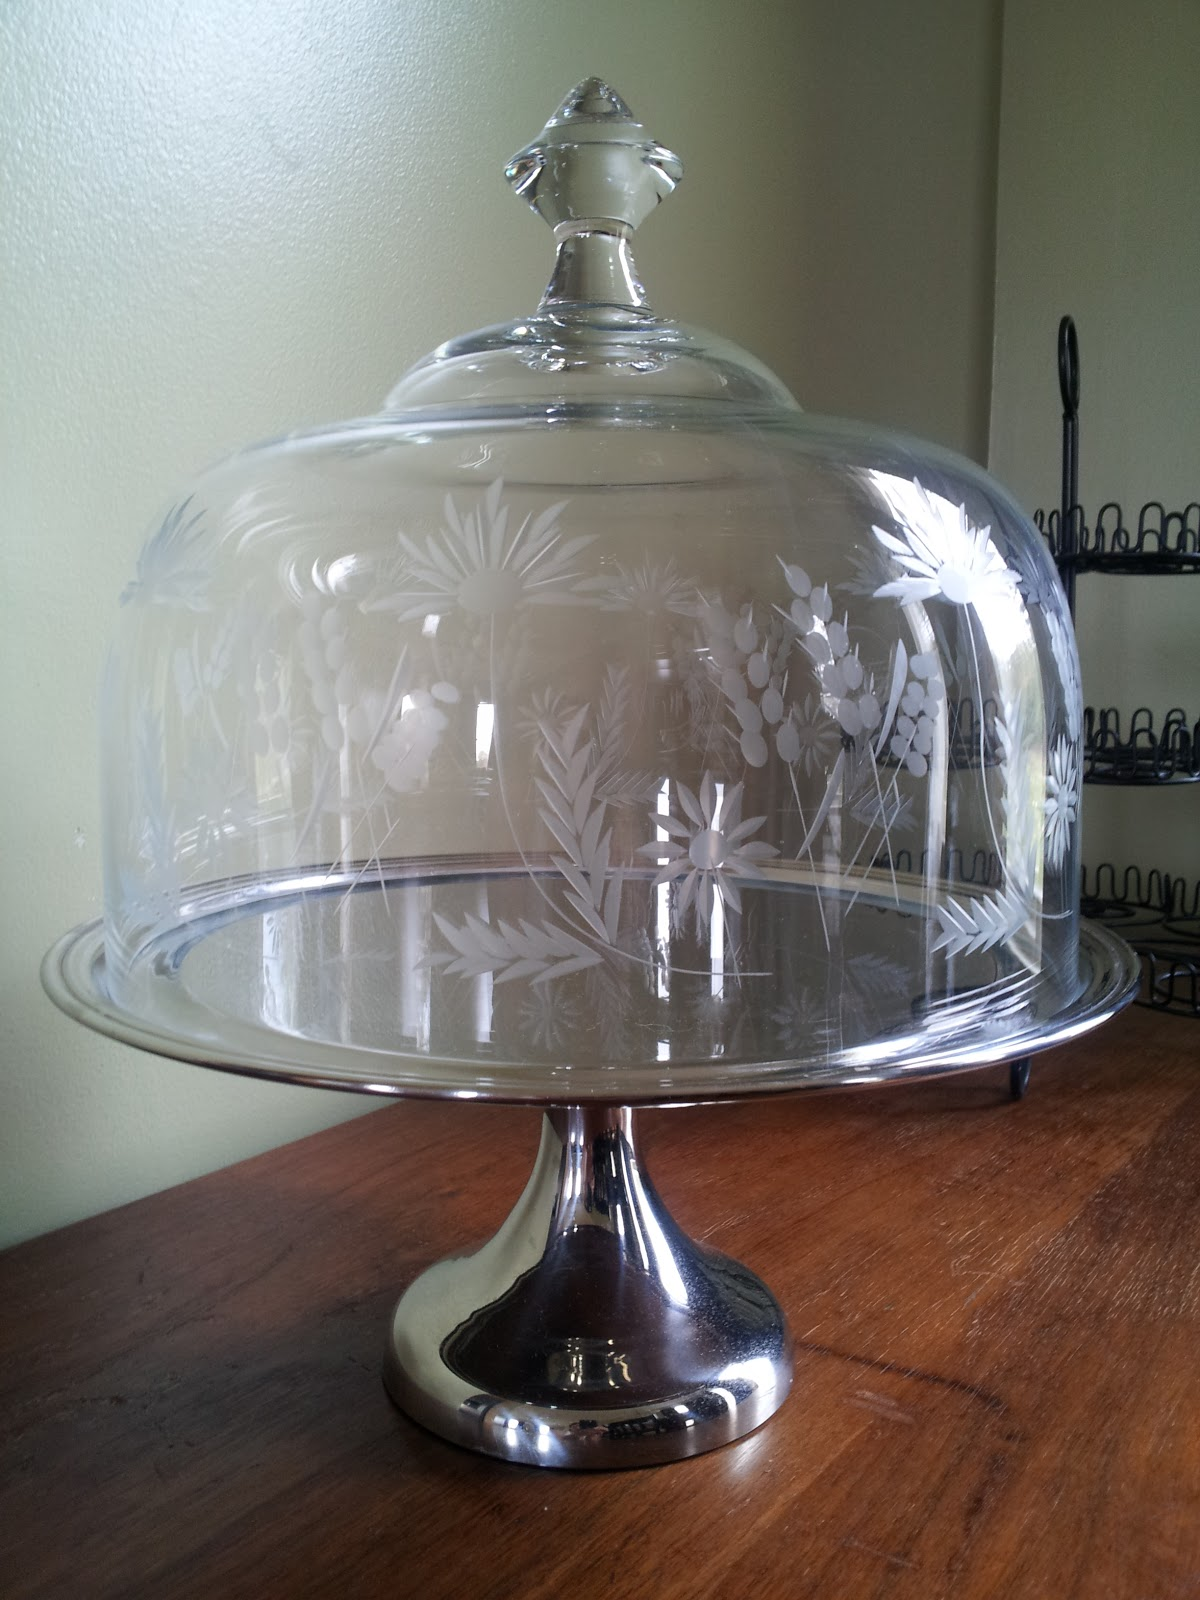 stand with ce cake dome image en guzzini pedestal l cm fratelli